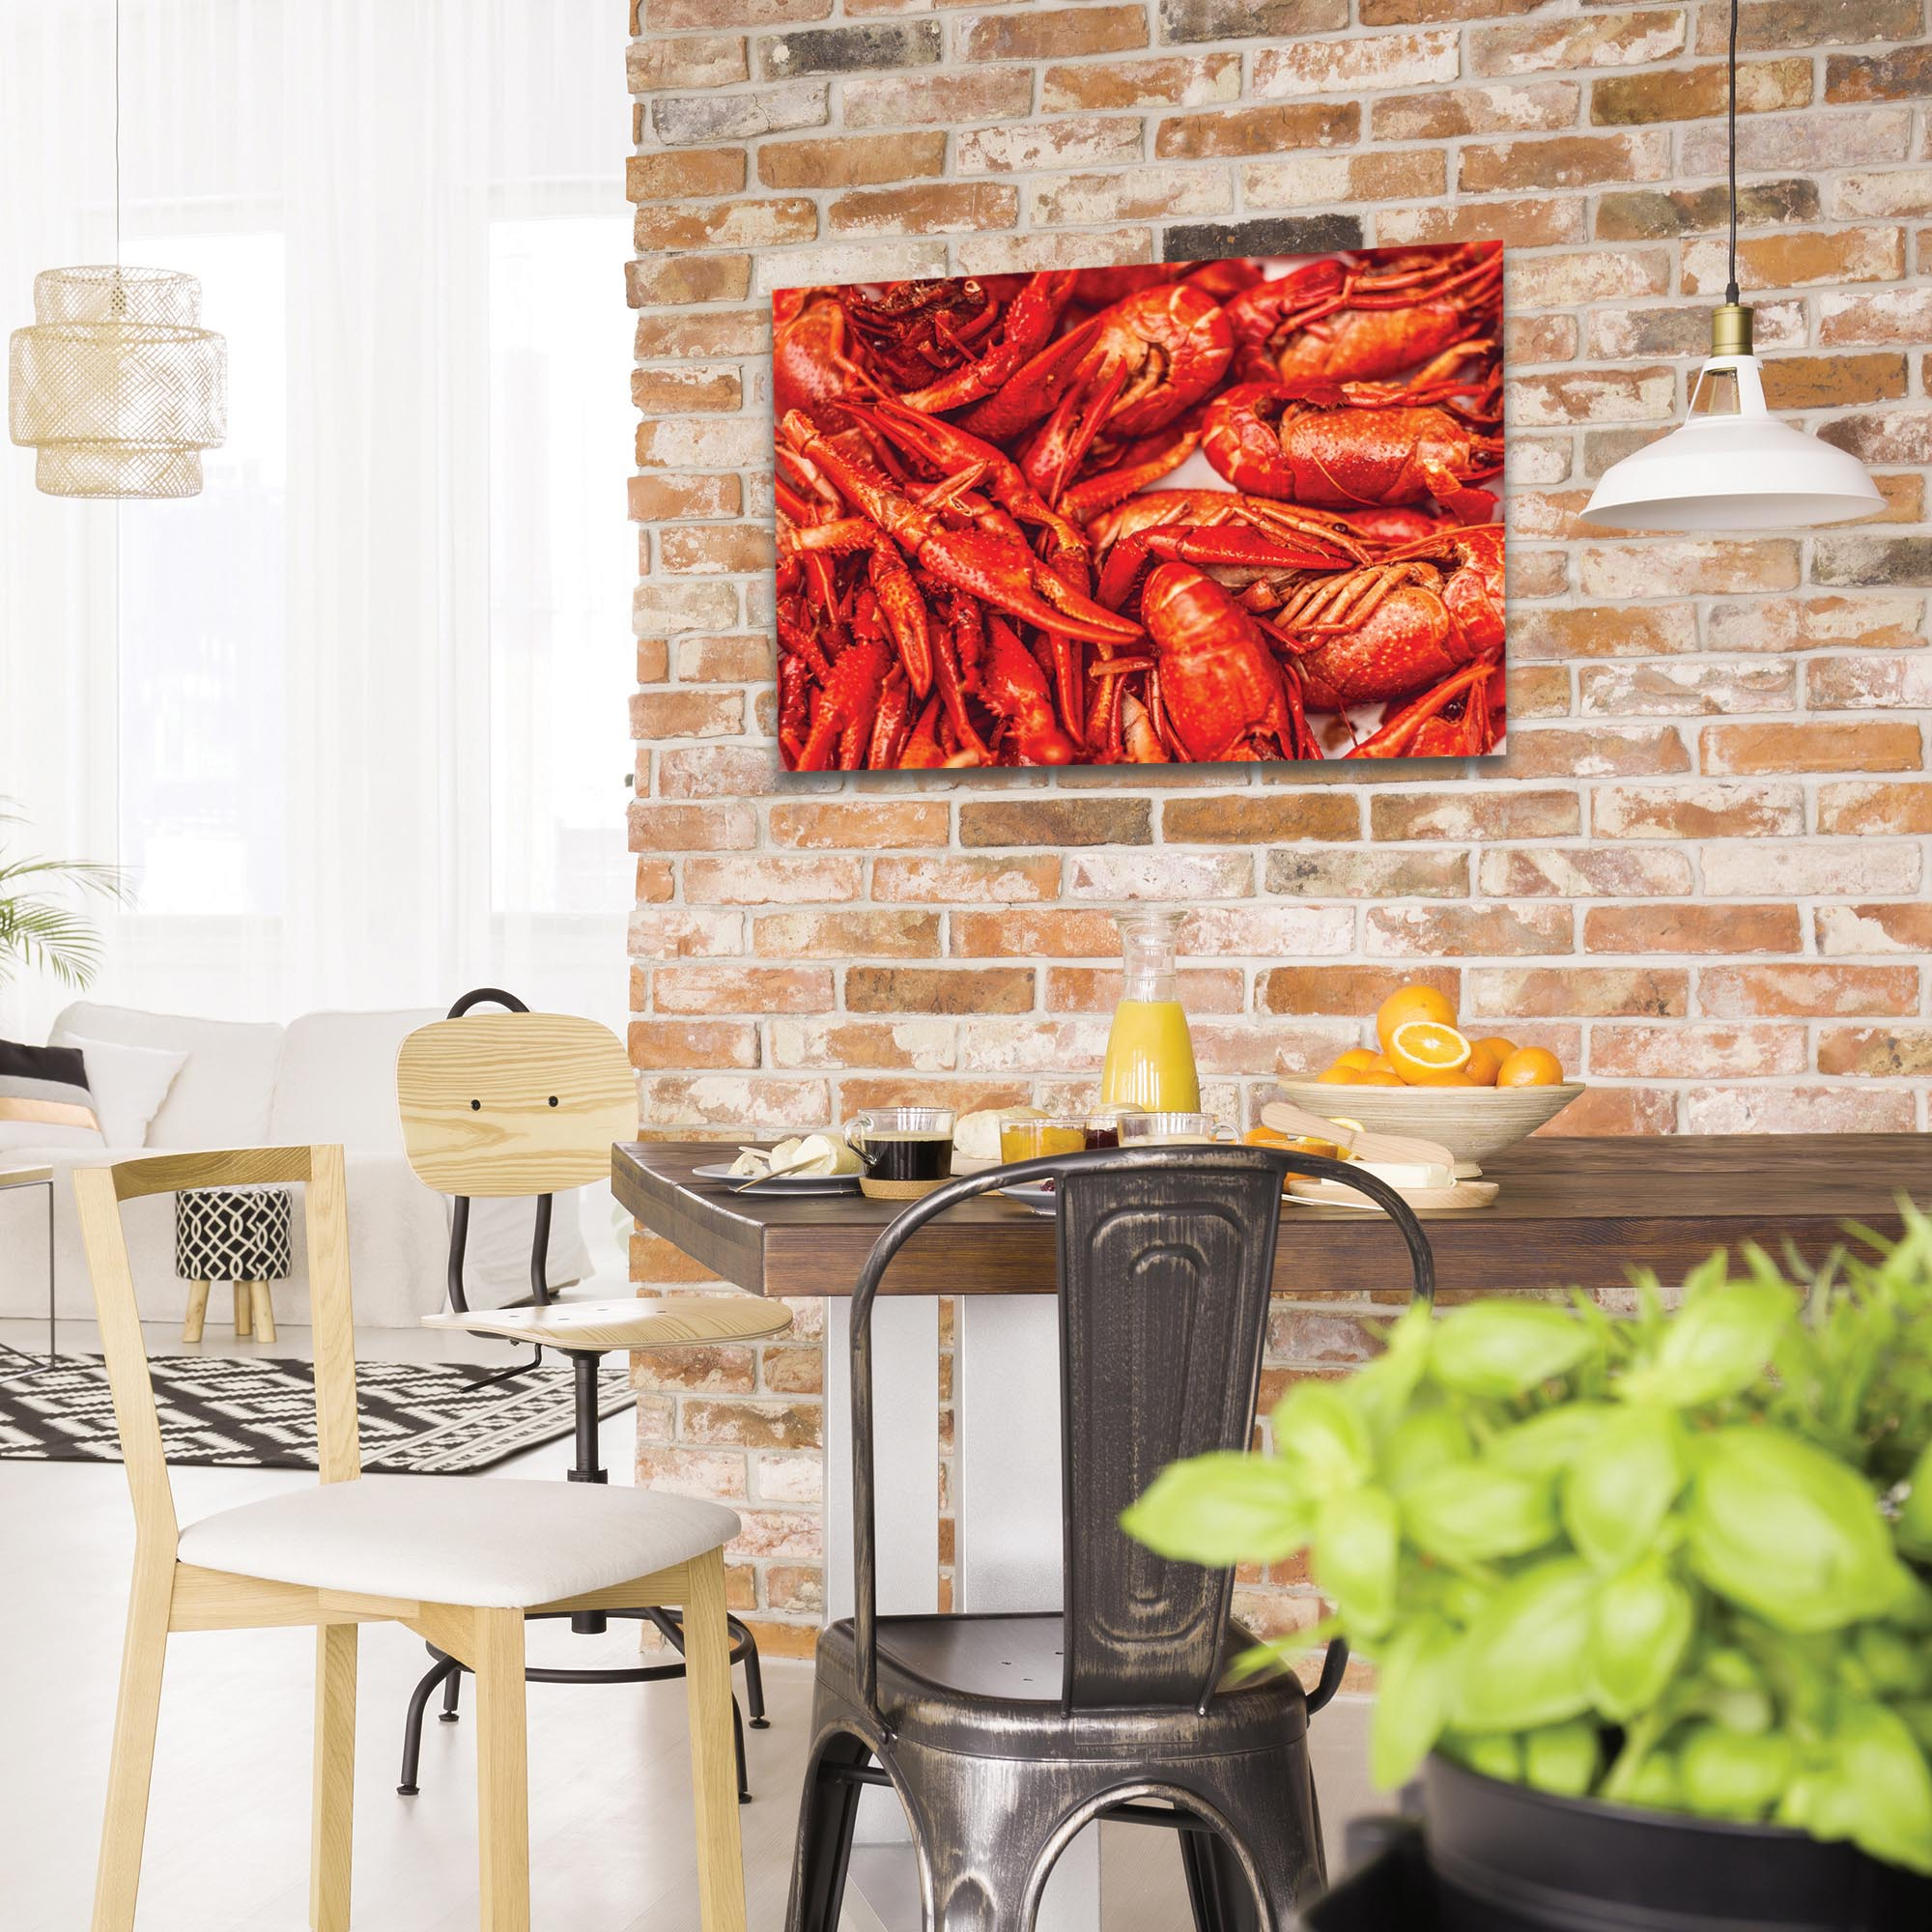 Coastal Wall Art 'Crawfish Supper' - Crayfish Boil Decor on Metal or Plexiglass - Lifestyle View